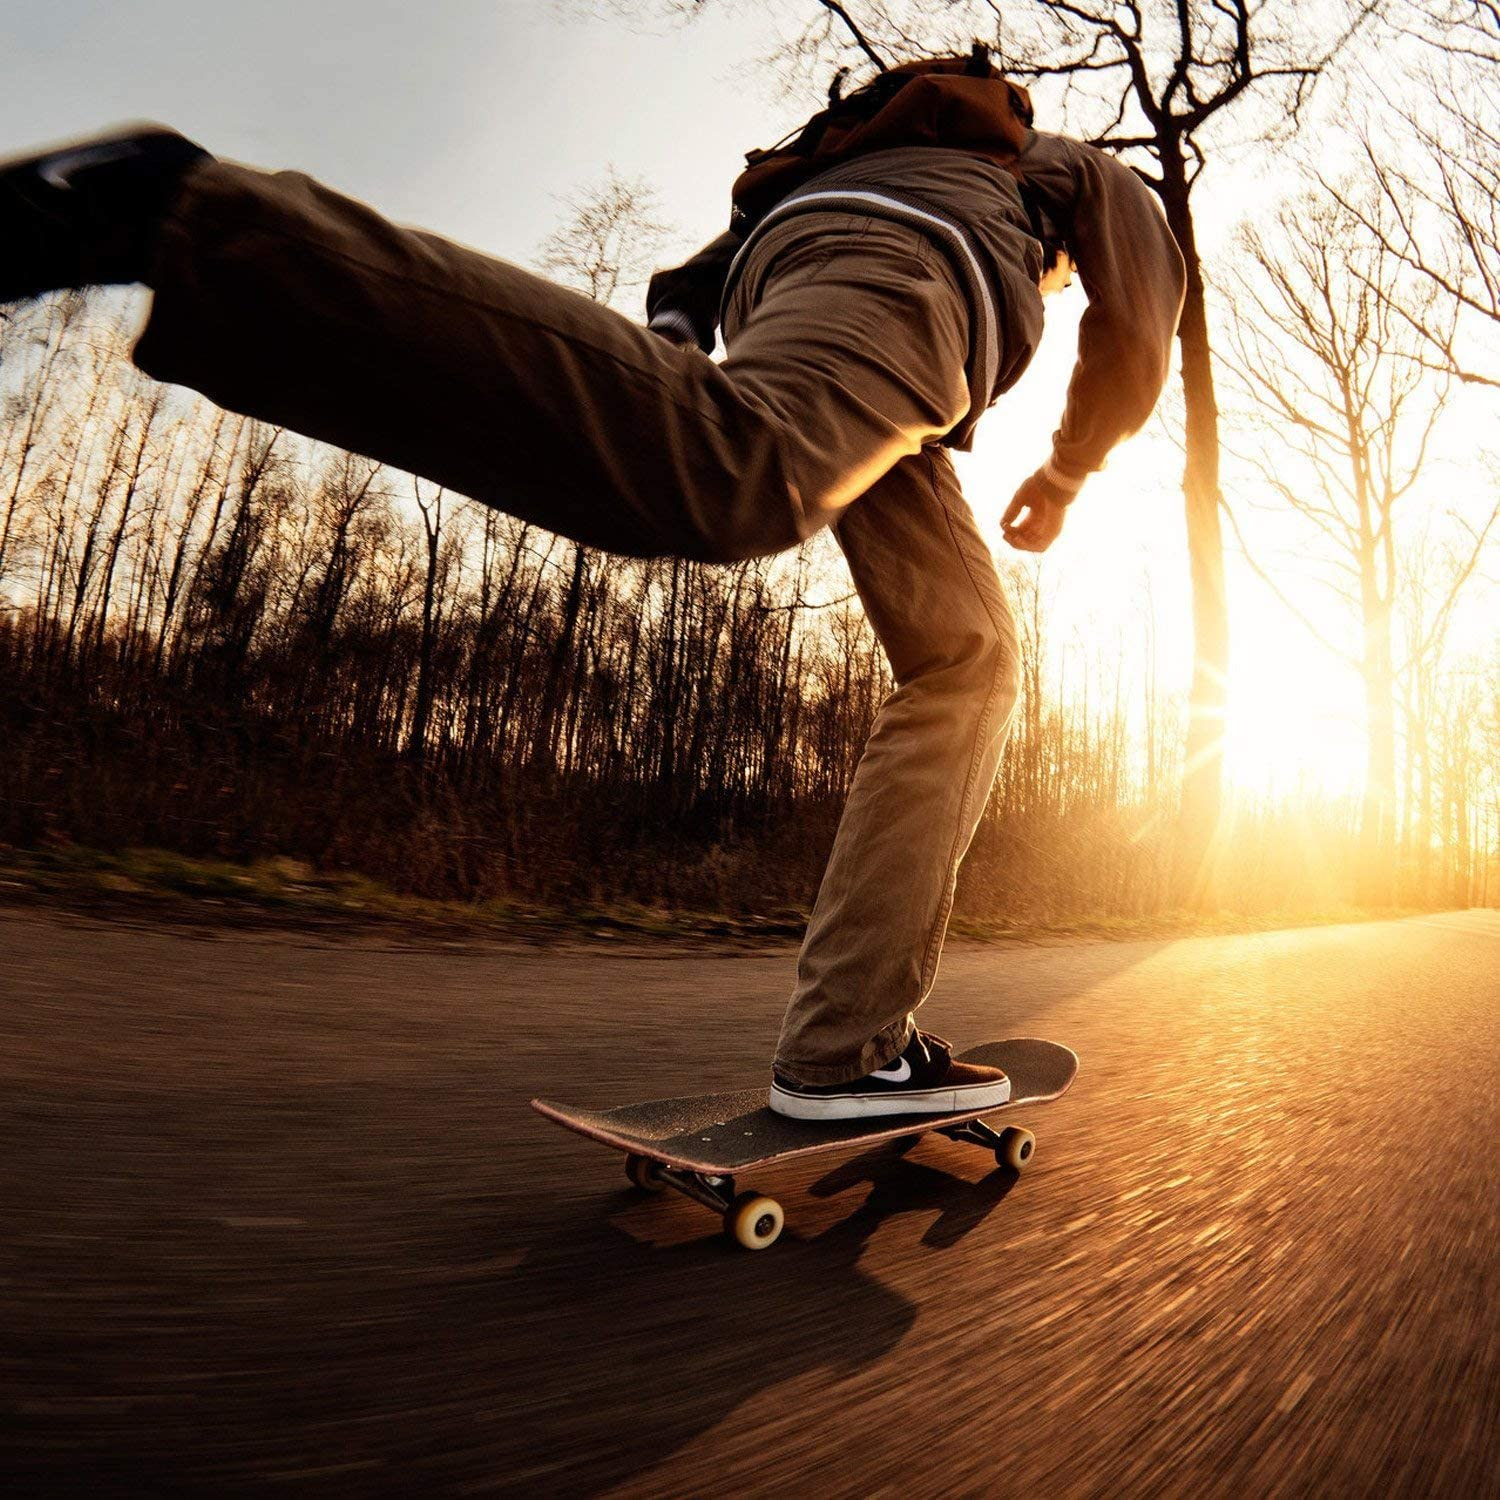 Aceshin Skateboard 31 x 8 Complete PRO Skateboard 9 Layer Canadian Maple Wood Double Kick Tricks Skate Board Concave Design for Beginner,Gift for Kids Boys Girls Youths